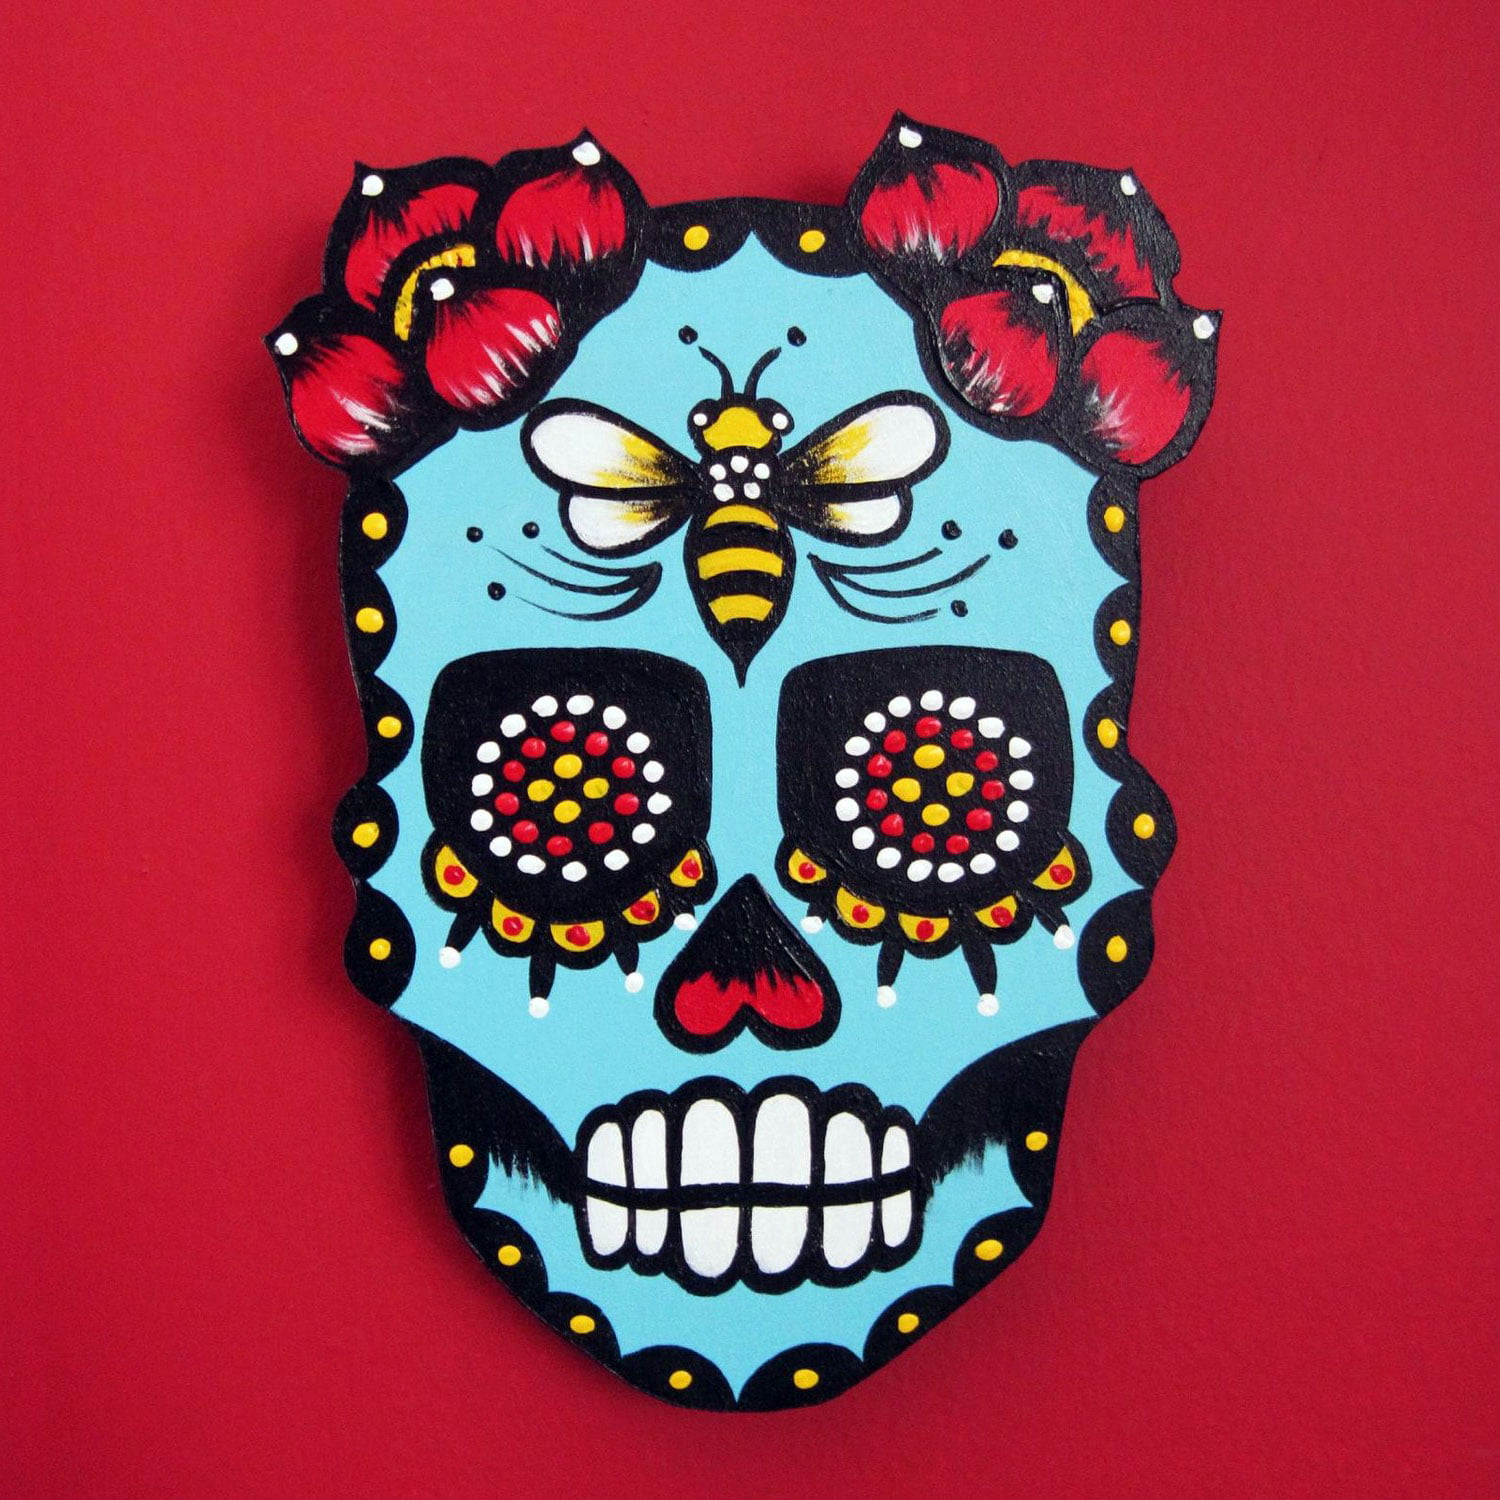 dia de los muertos tattoos ideas cool tattoos bonbaden female dia de los muertos tattoos